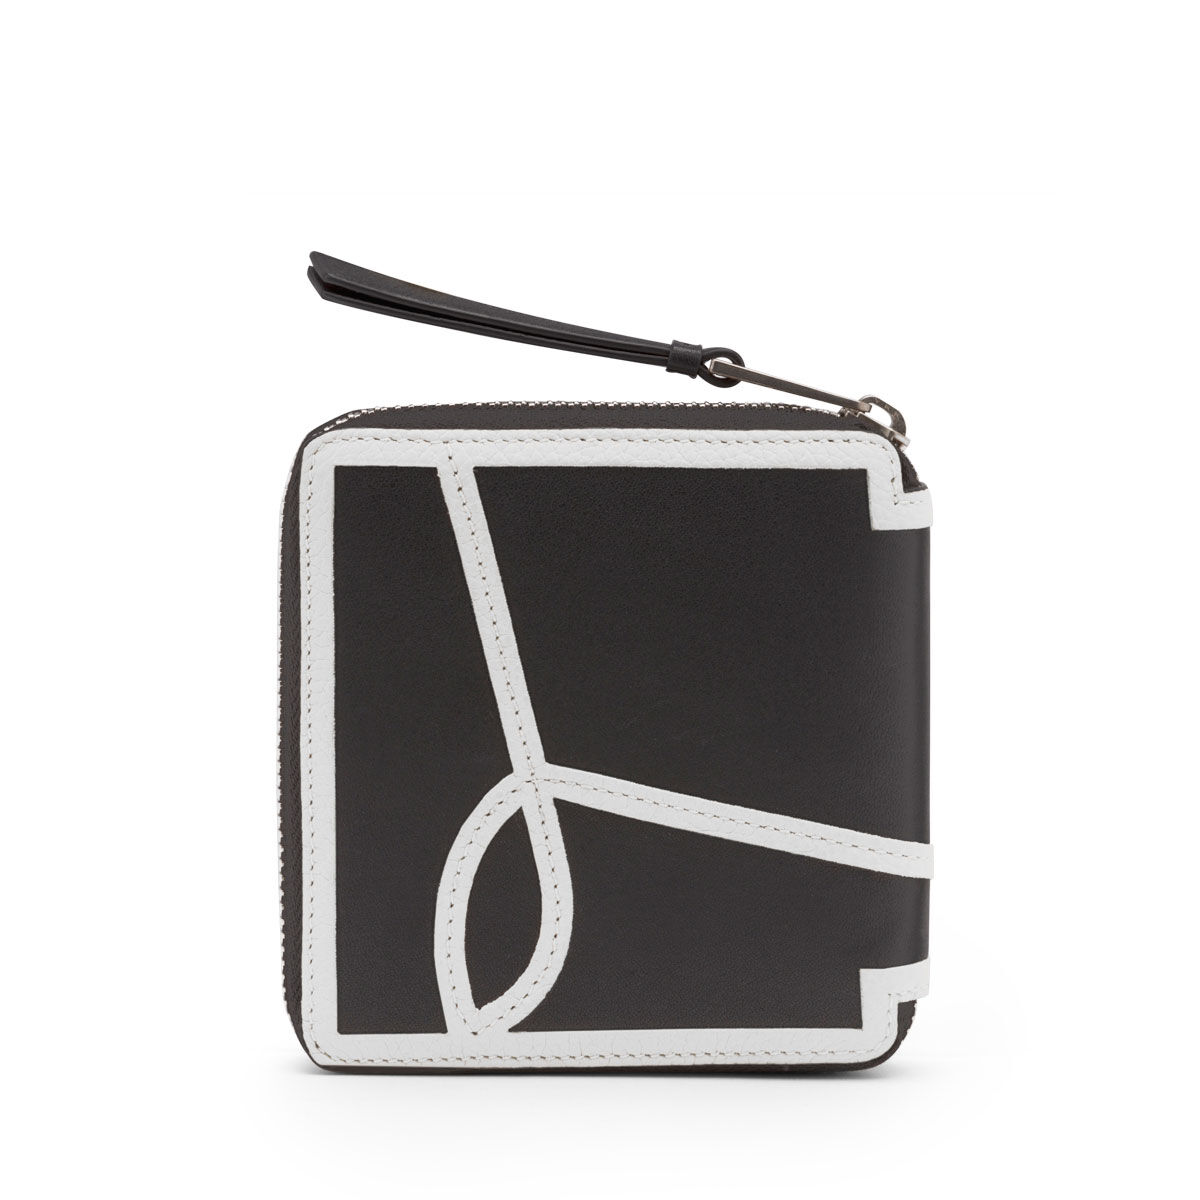 LOEWE Billetero C/C Cuad Puzzle Rose Blanco/Negro all